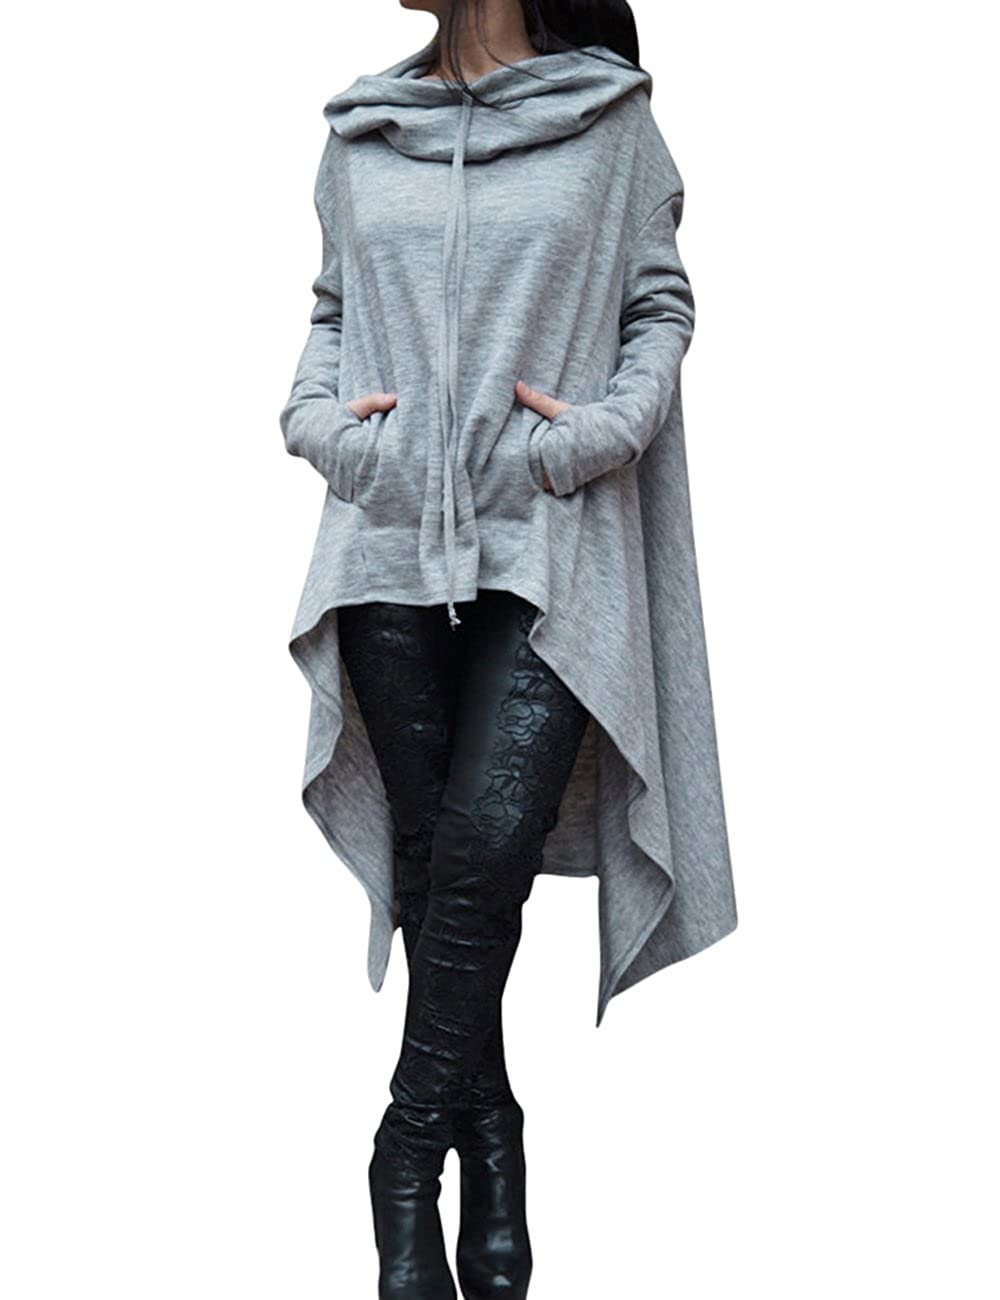 Shinekoo Women Long Sleeve Asymmetric Hooded Cloak Sweatshirt Dress Pullover